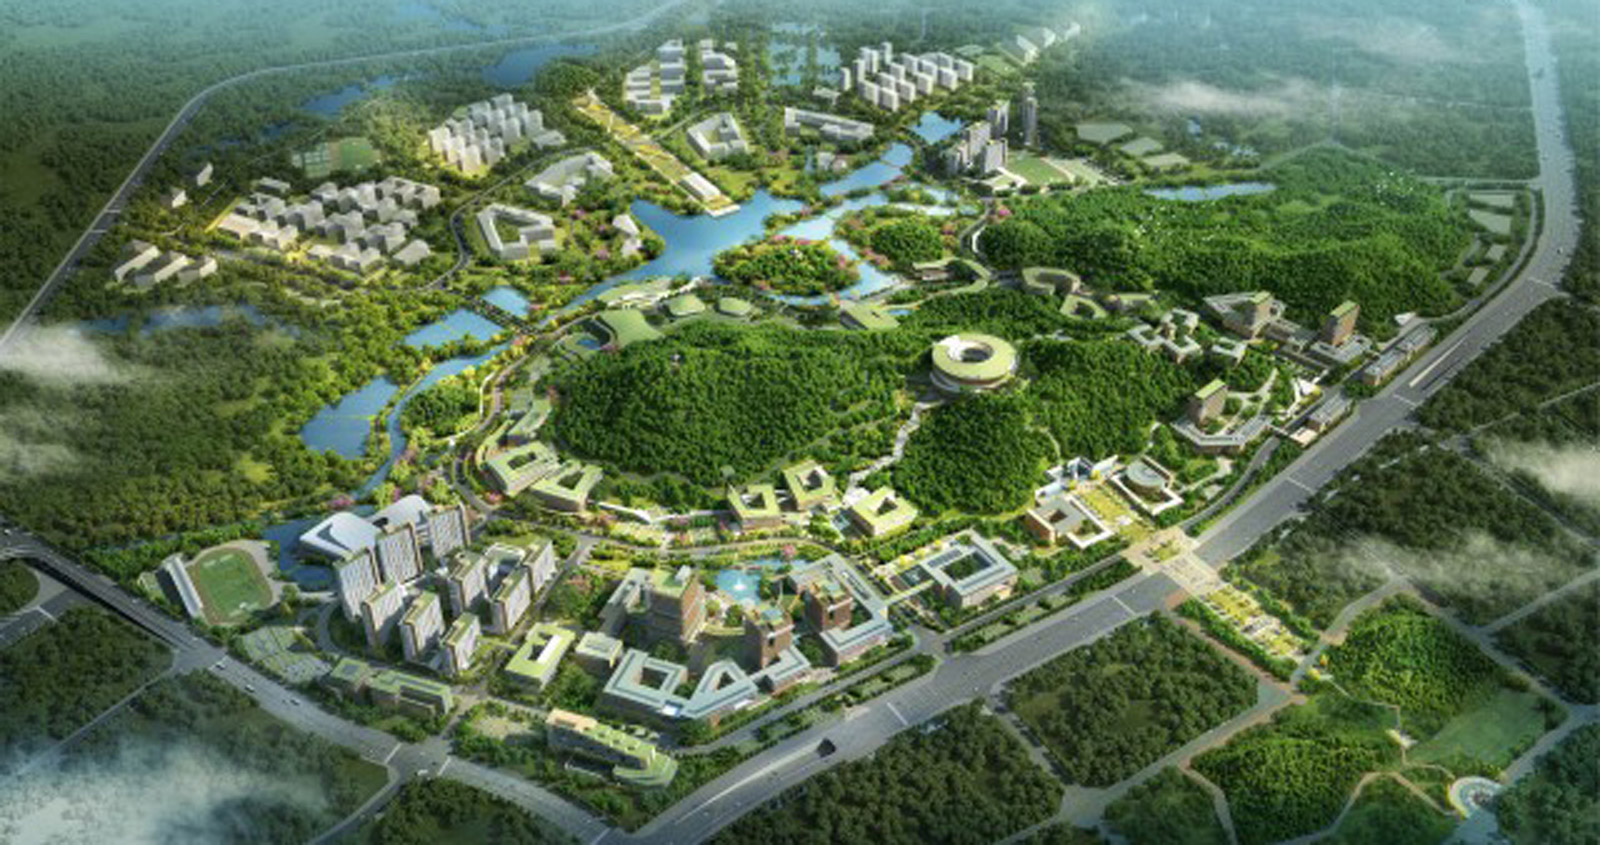 RMJM Shenzhen awarded the design for the Shenzhen Campus of Sun Yat-sen University